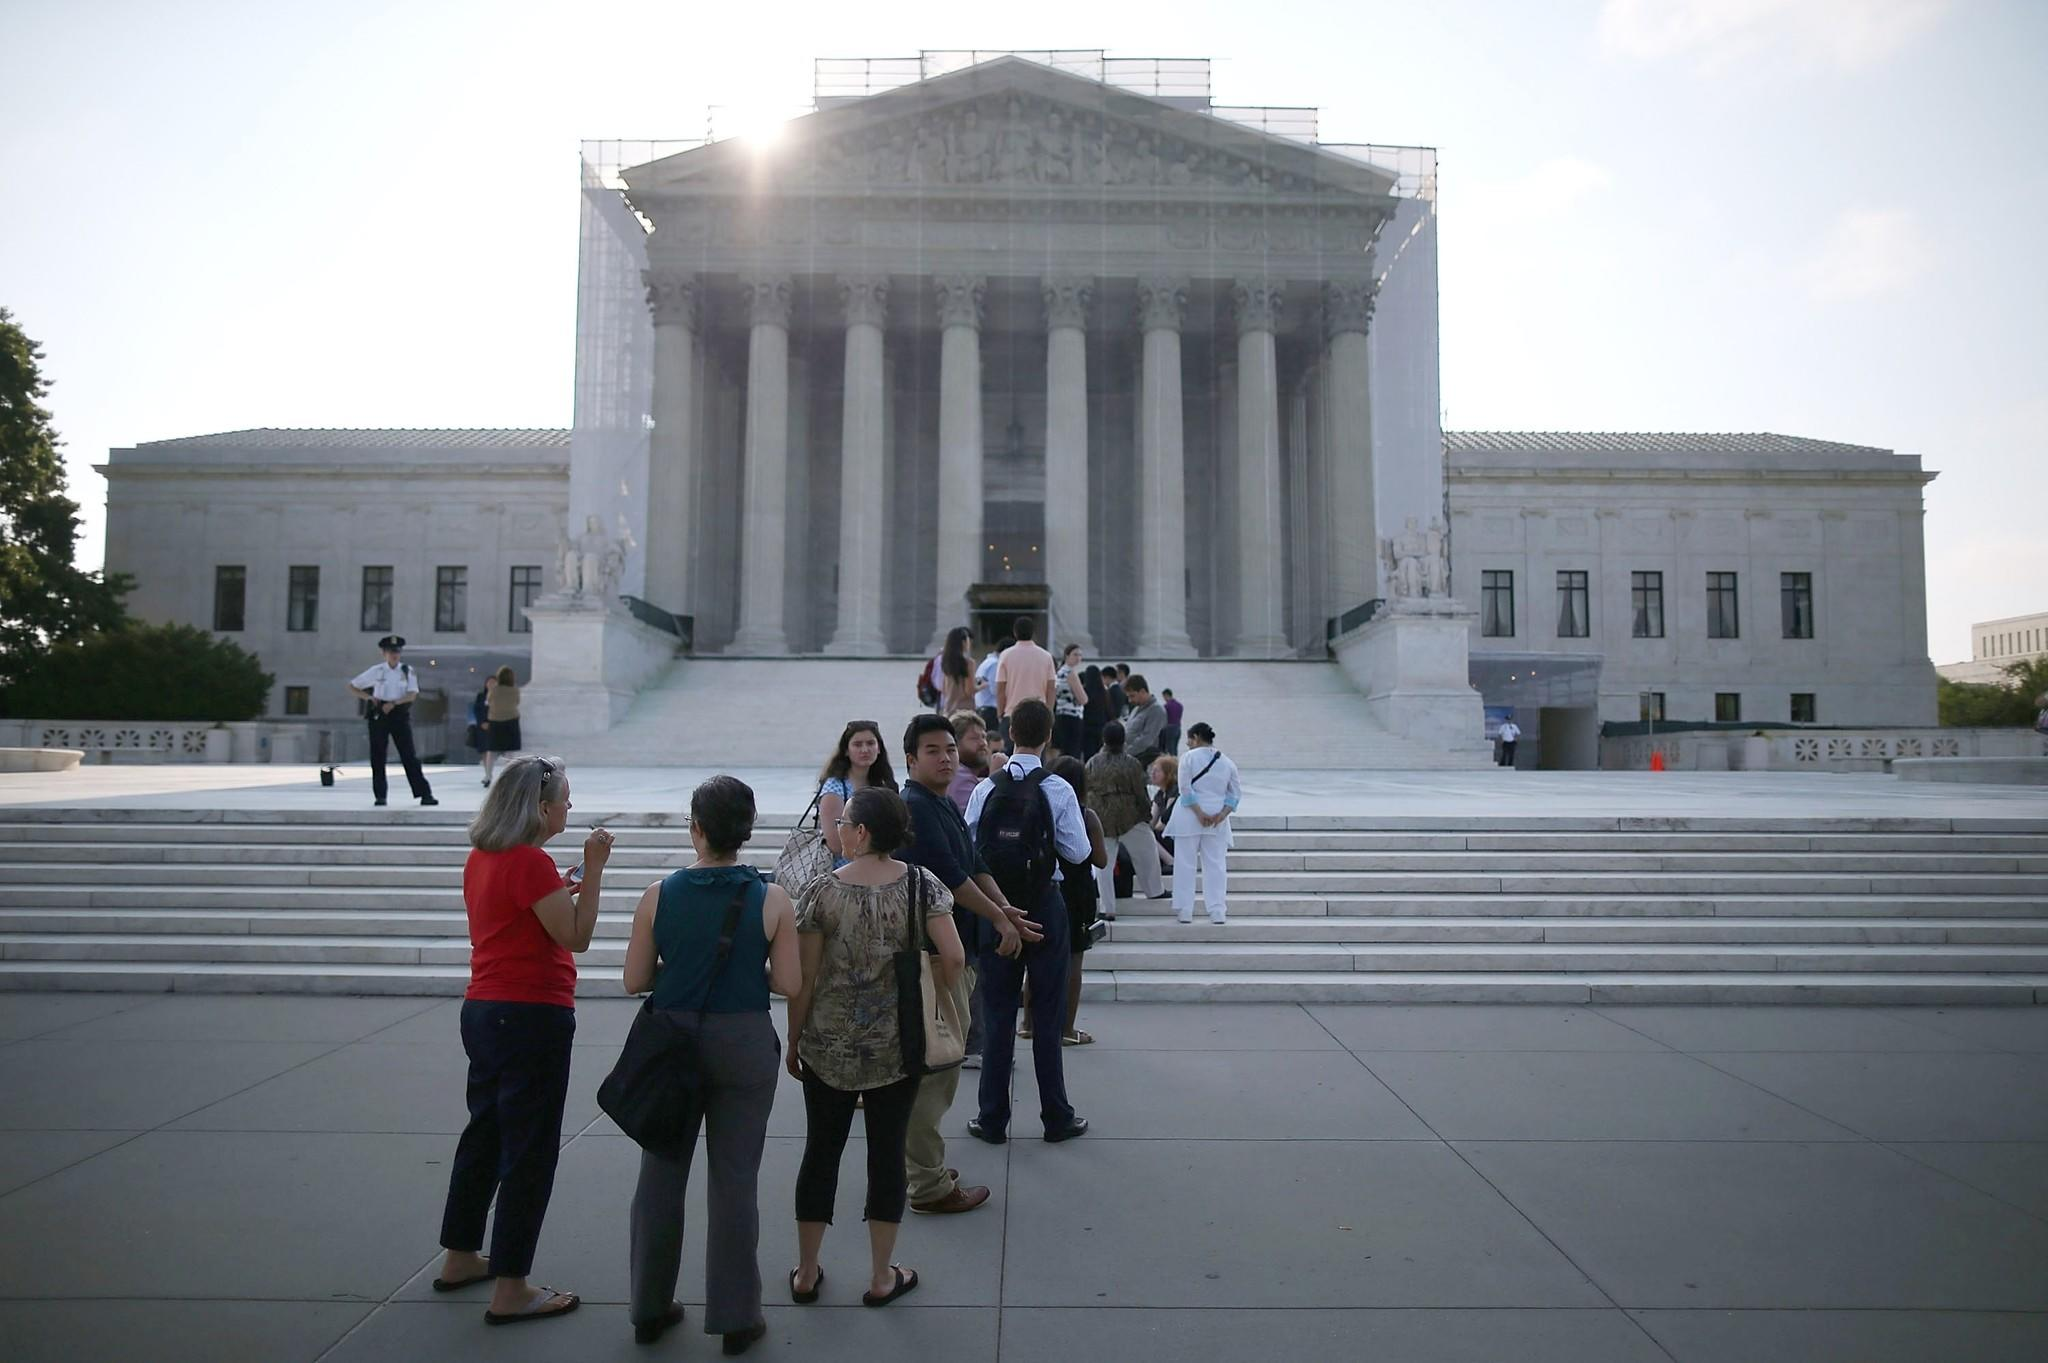 In their 65-page briefing filed Monday to the Supreme Court, broadcasters -- including ABC, CBS, NBCUniversal, Fox and Los Angeles Times parent Tribune Co. -- cited work critical of a lower court ruling favoring Aereo by Jane Ginsburg, a professor at Columbia University's School of Law and daughter of Justice Ruth Bader Ginsburg.